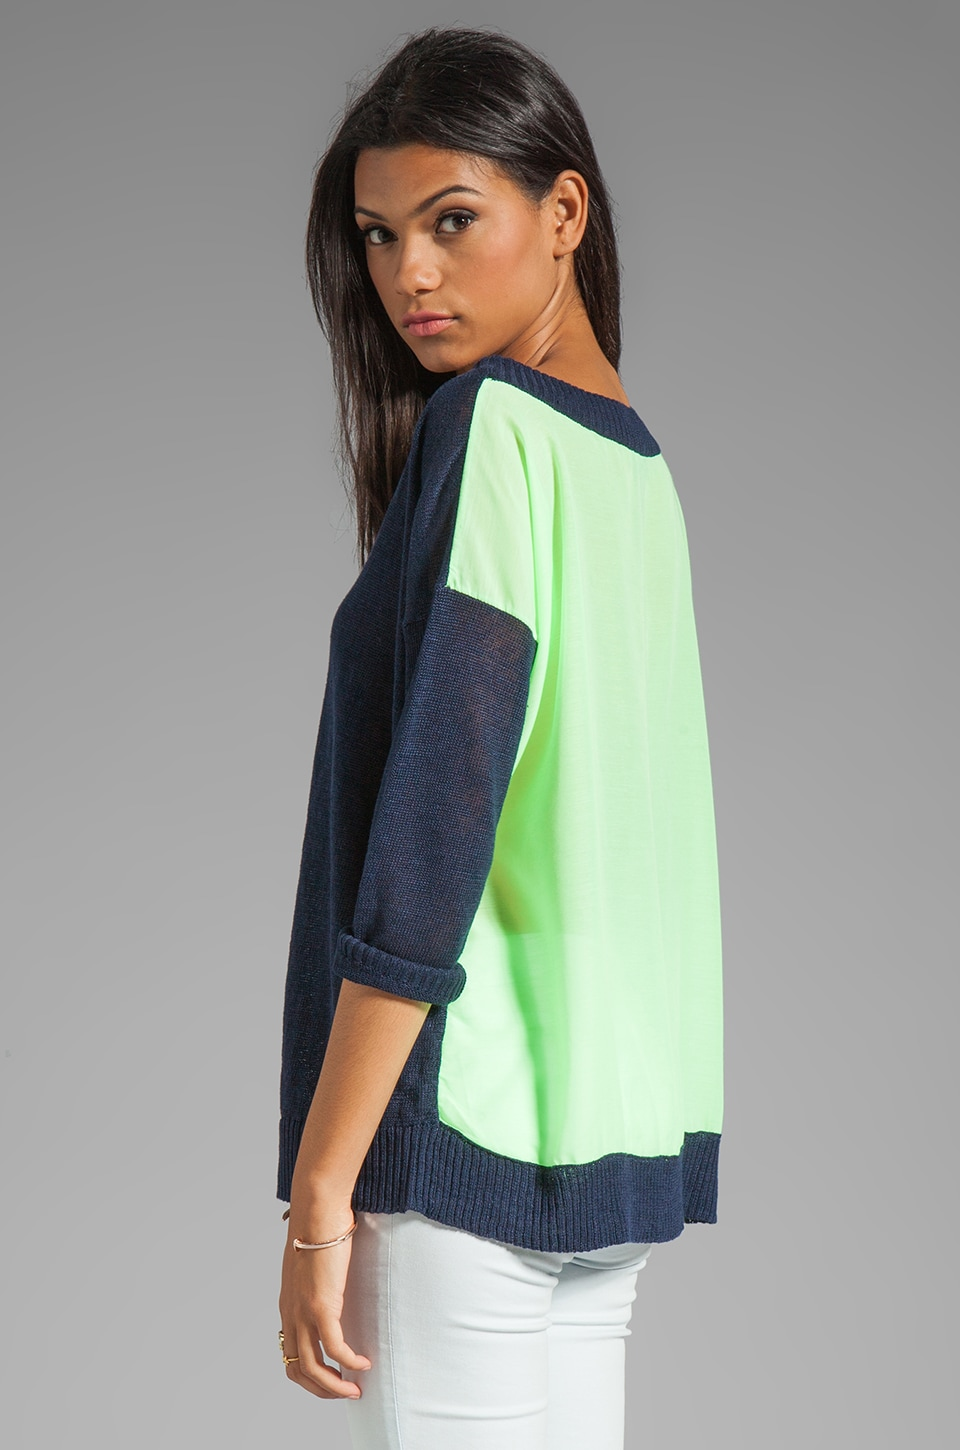 Central Park West Santorini Top in Navy/Lime